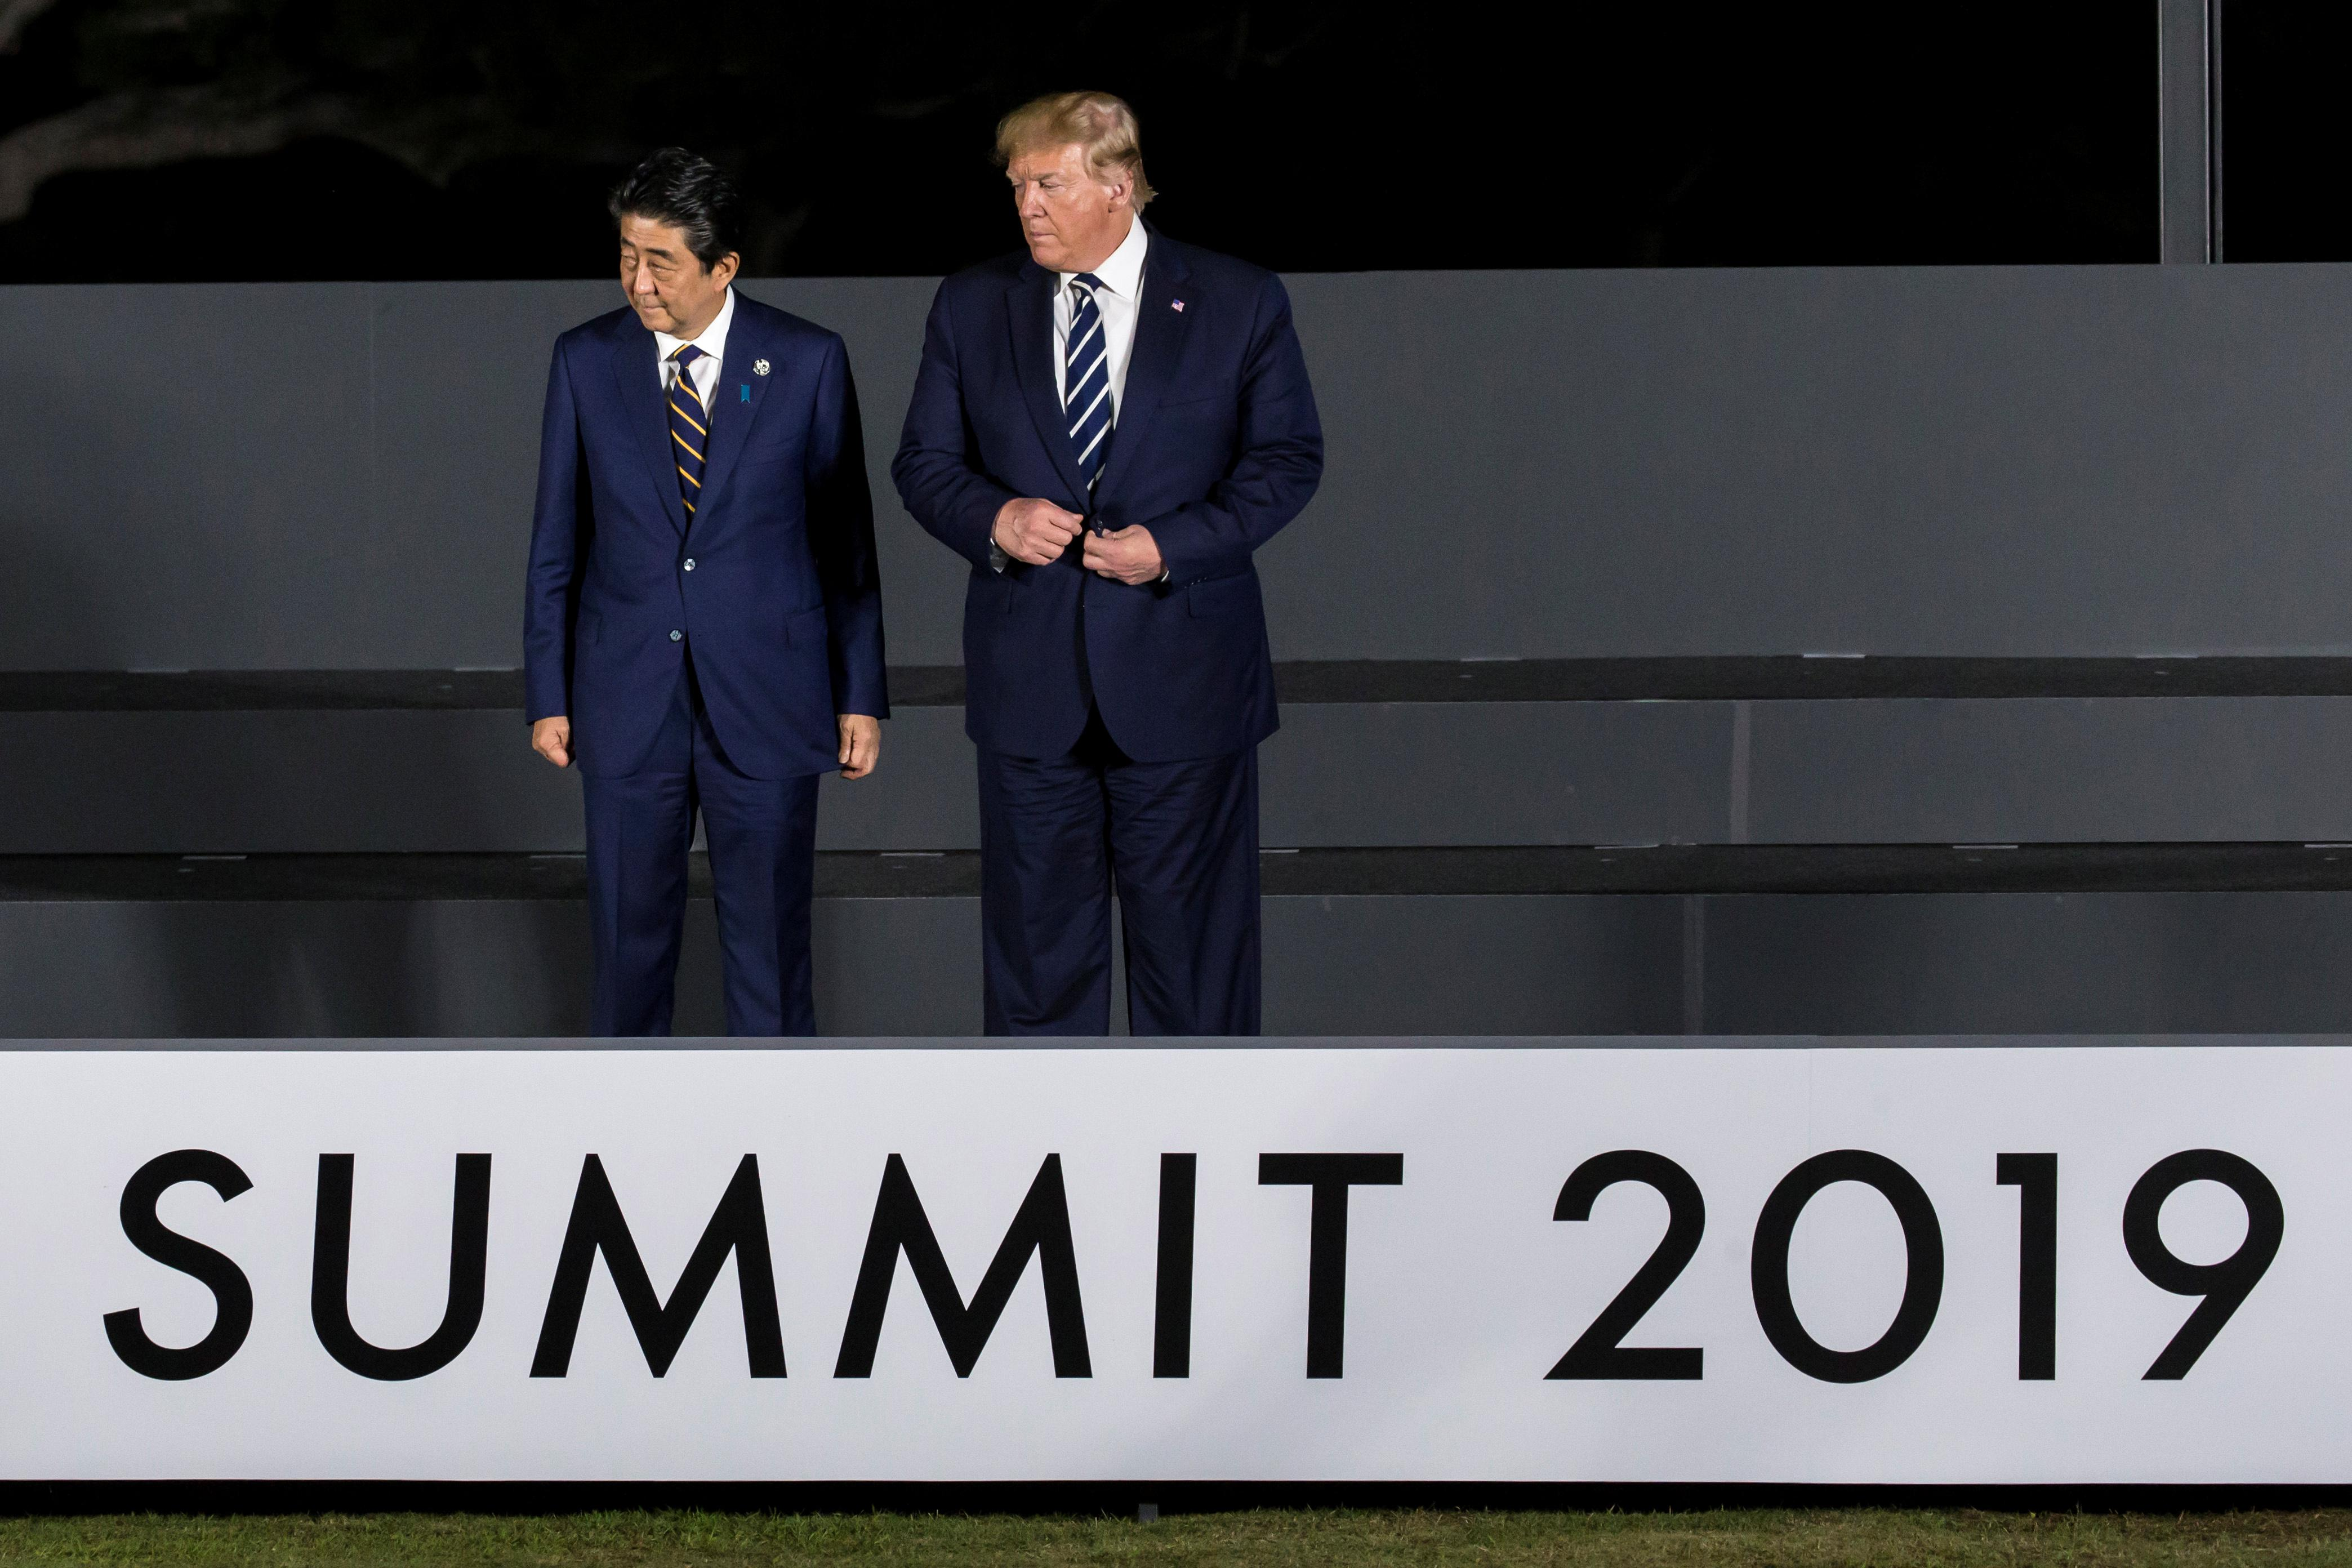 Trump says 'unfair' defense treaty with Japan needs to be changed